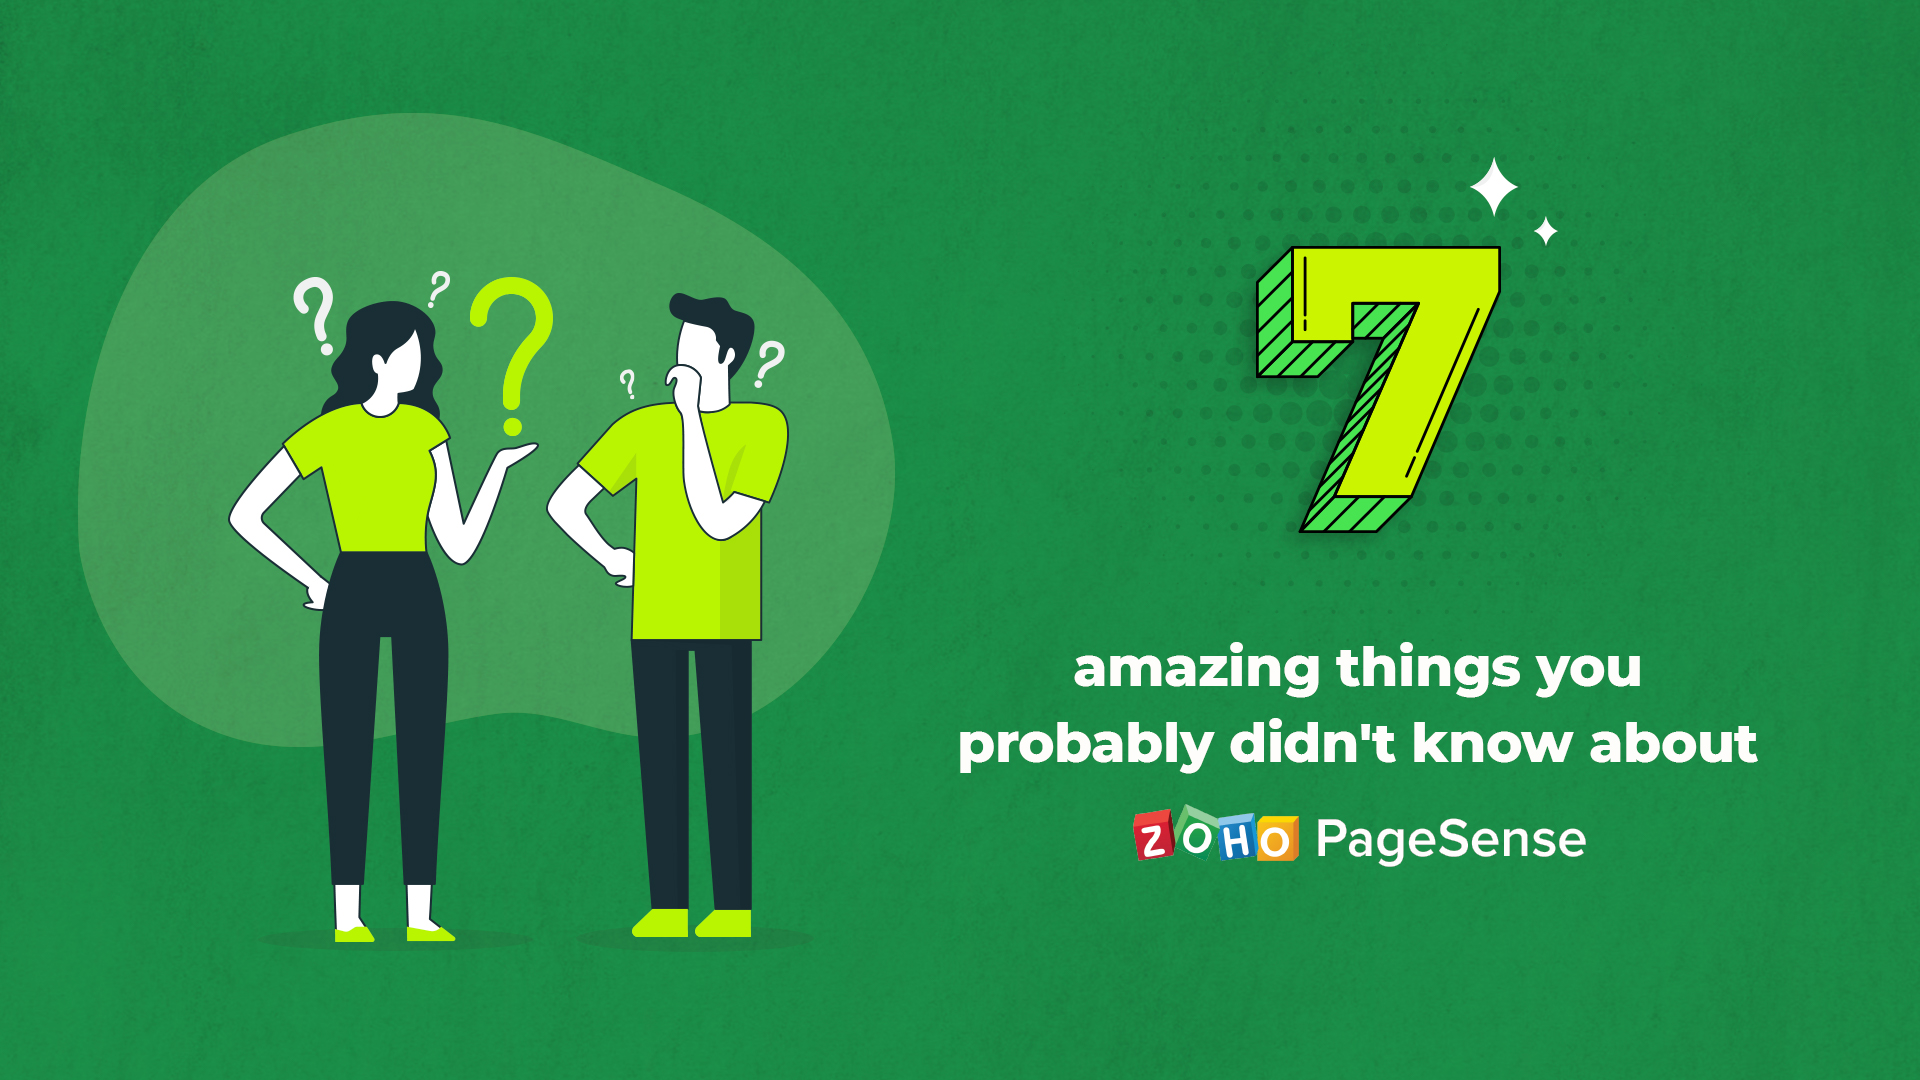 7 Amazing Things You Probably Didn't Know About Zoho PageSense